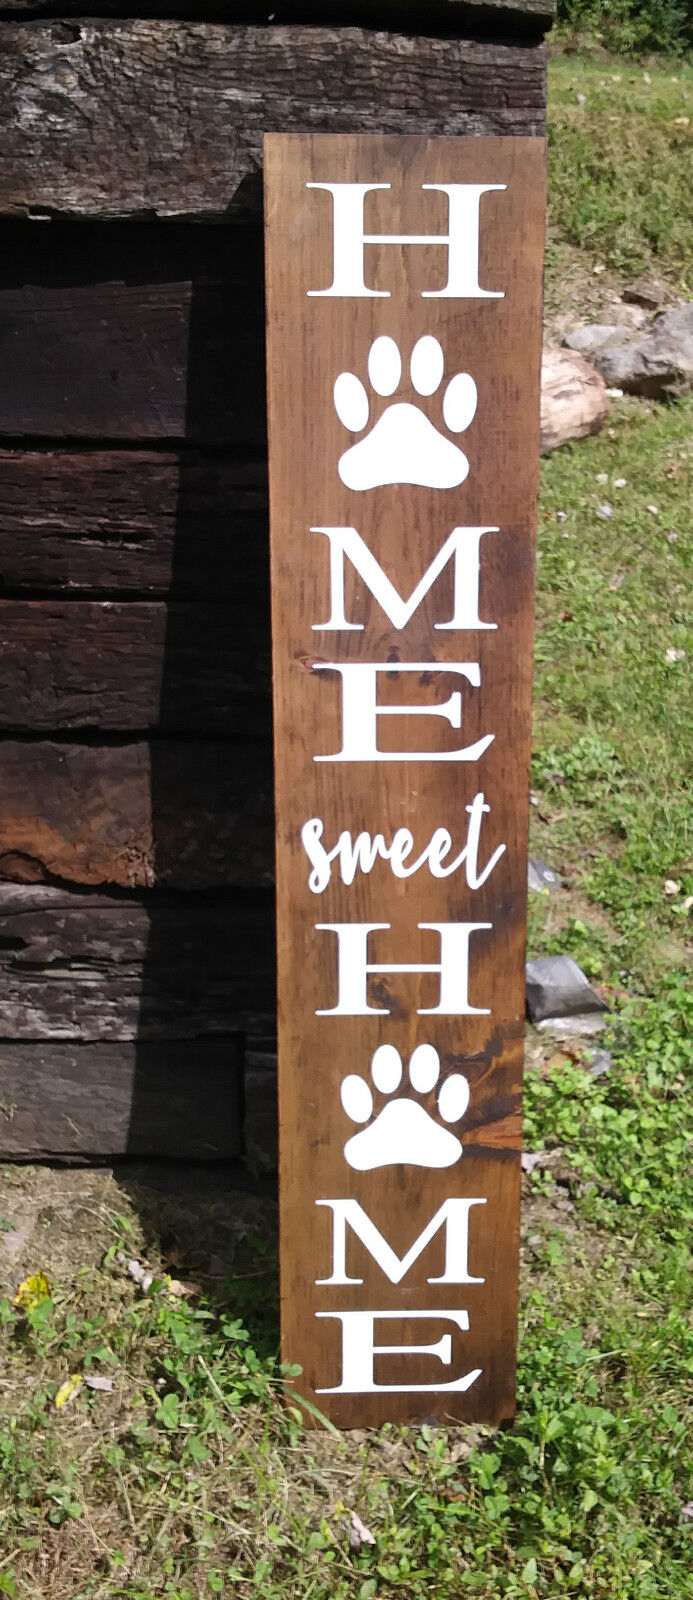 LARGE HOME SWEET HOME PAW WOOD SIGN Weiß INDOOR HOME DECOR WOOD GIFT 48 IN